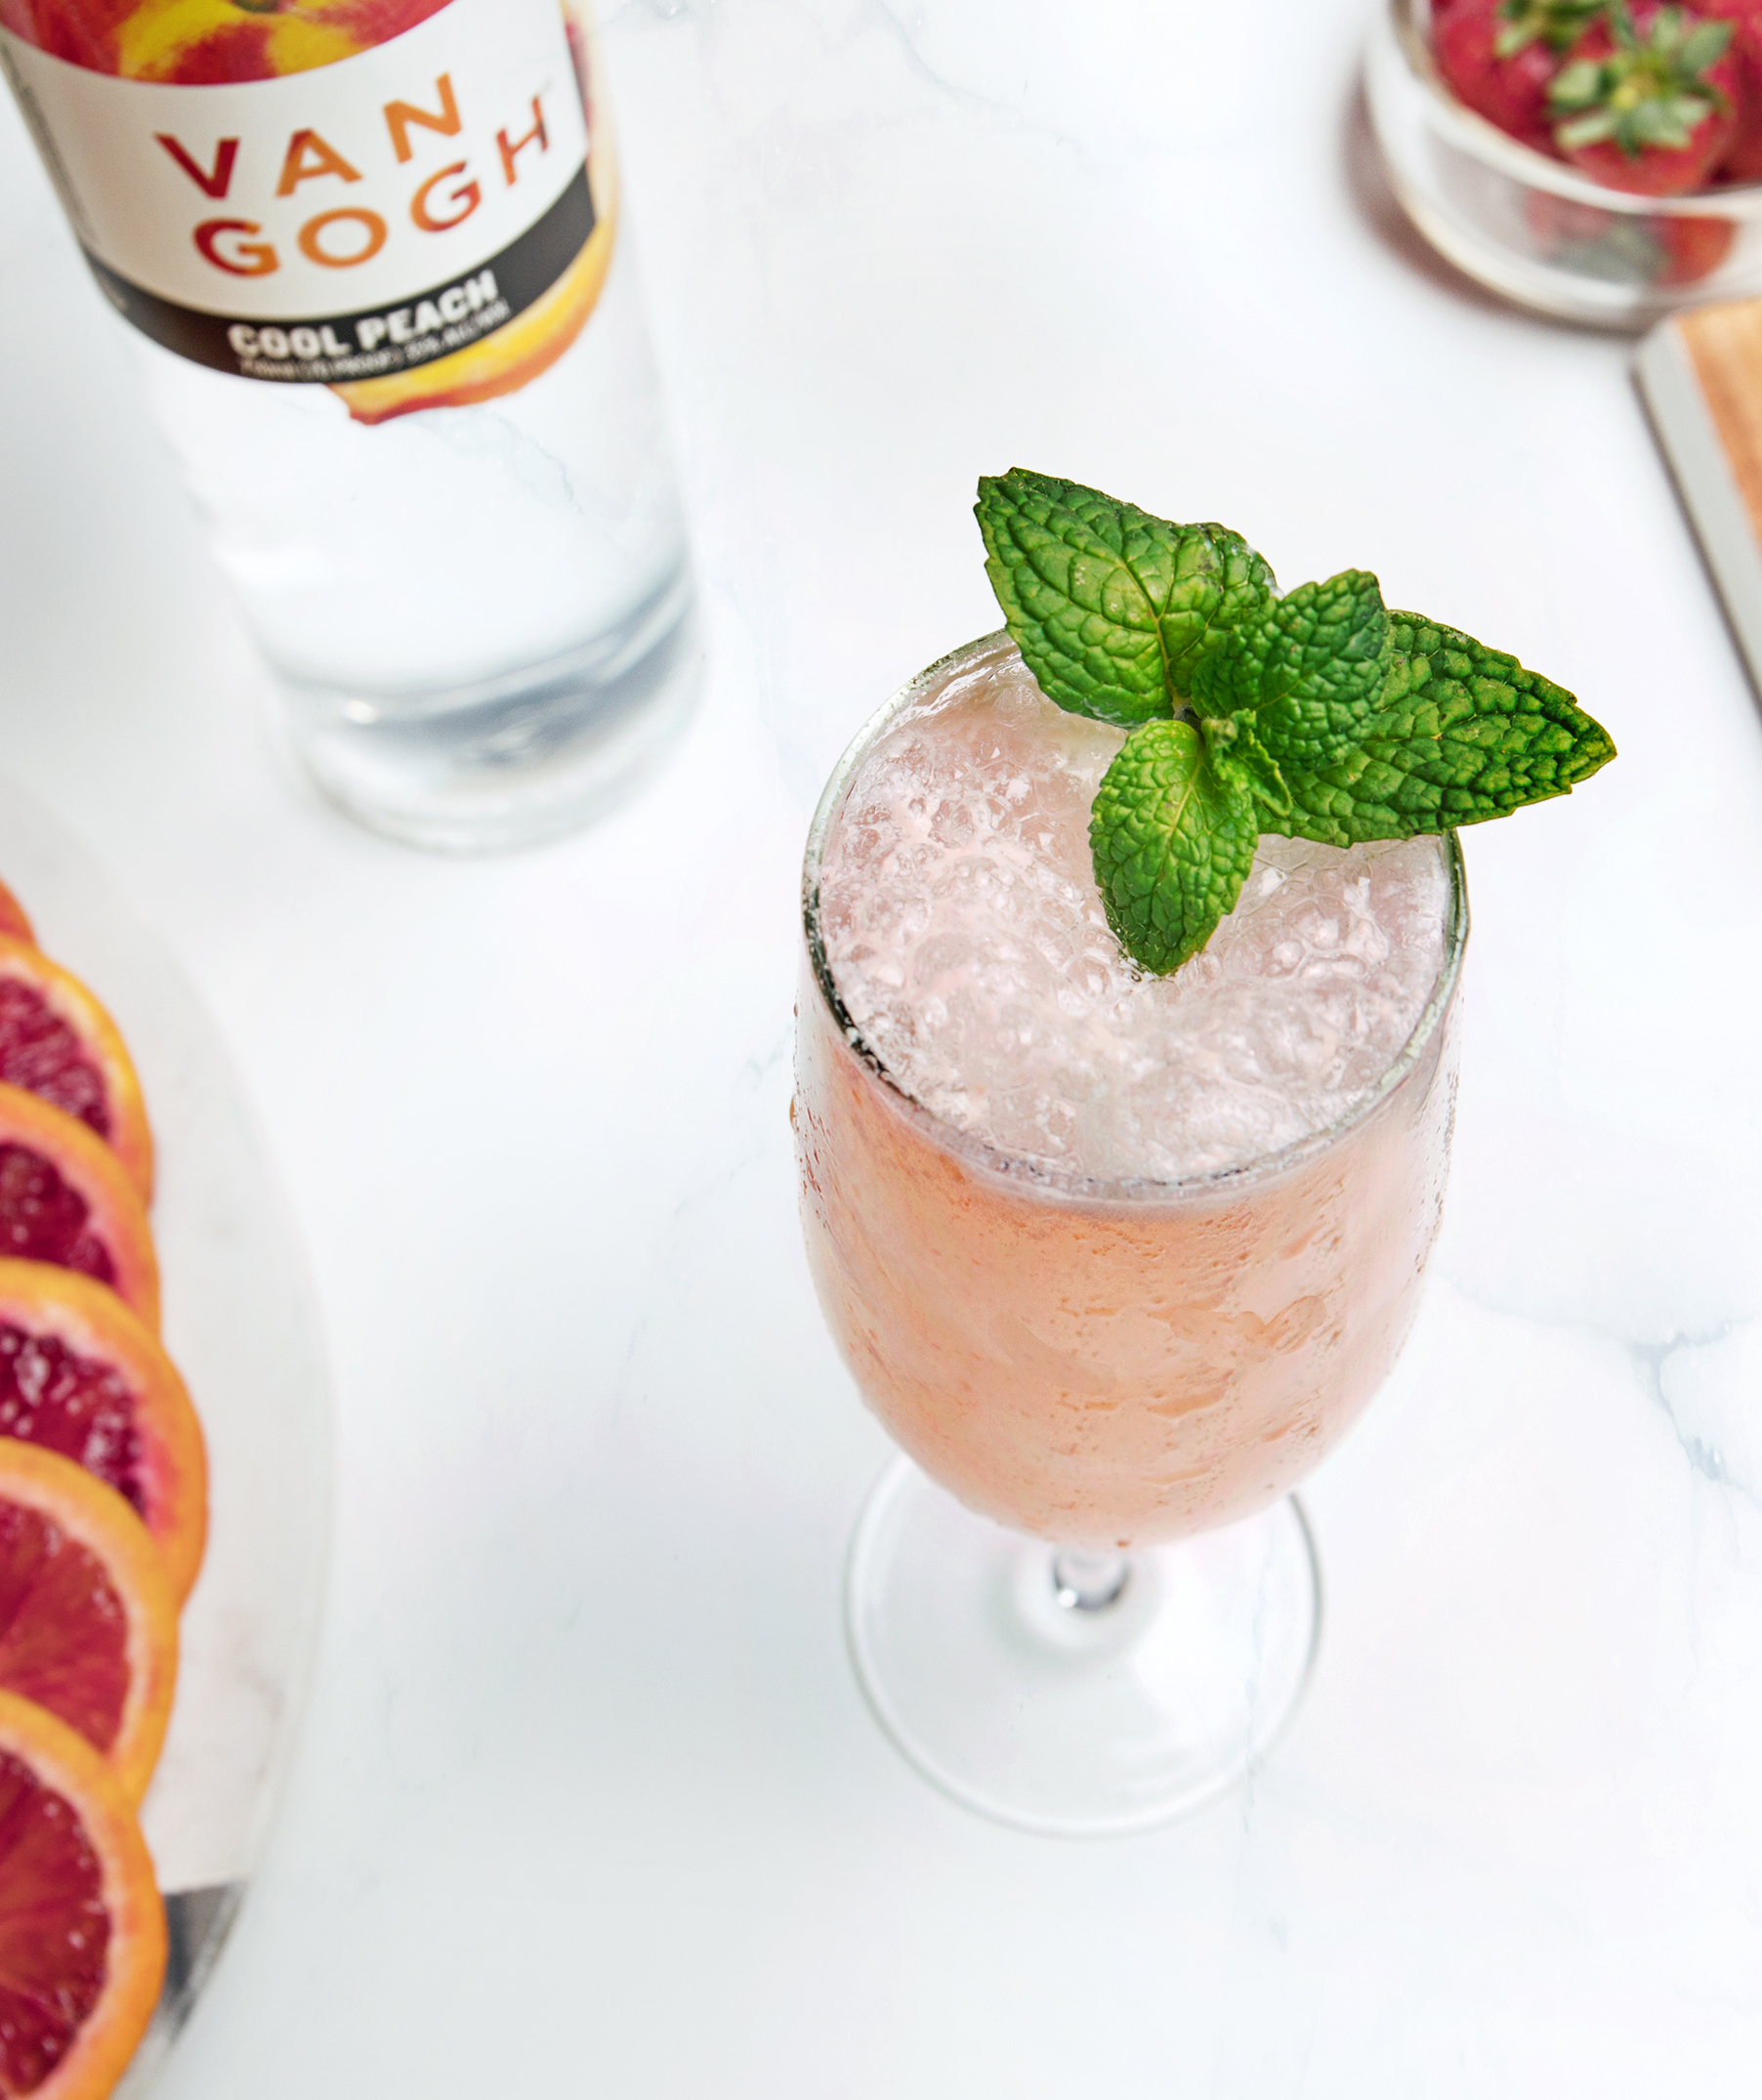 VG - Cool Peach Bellini